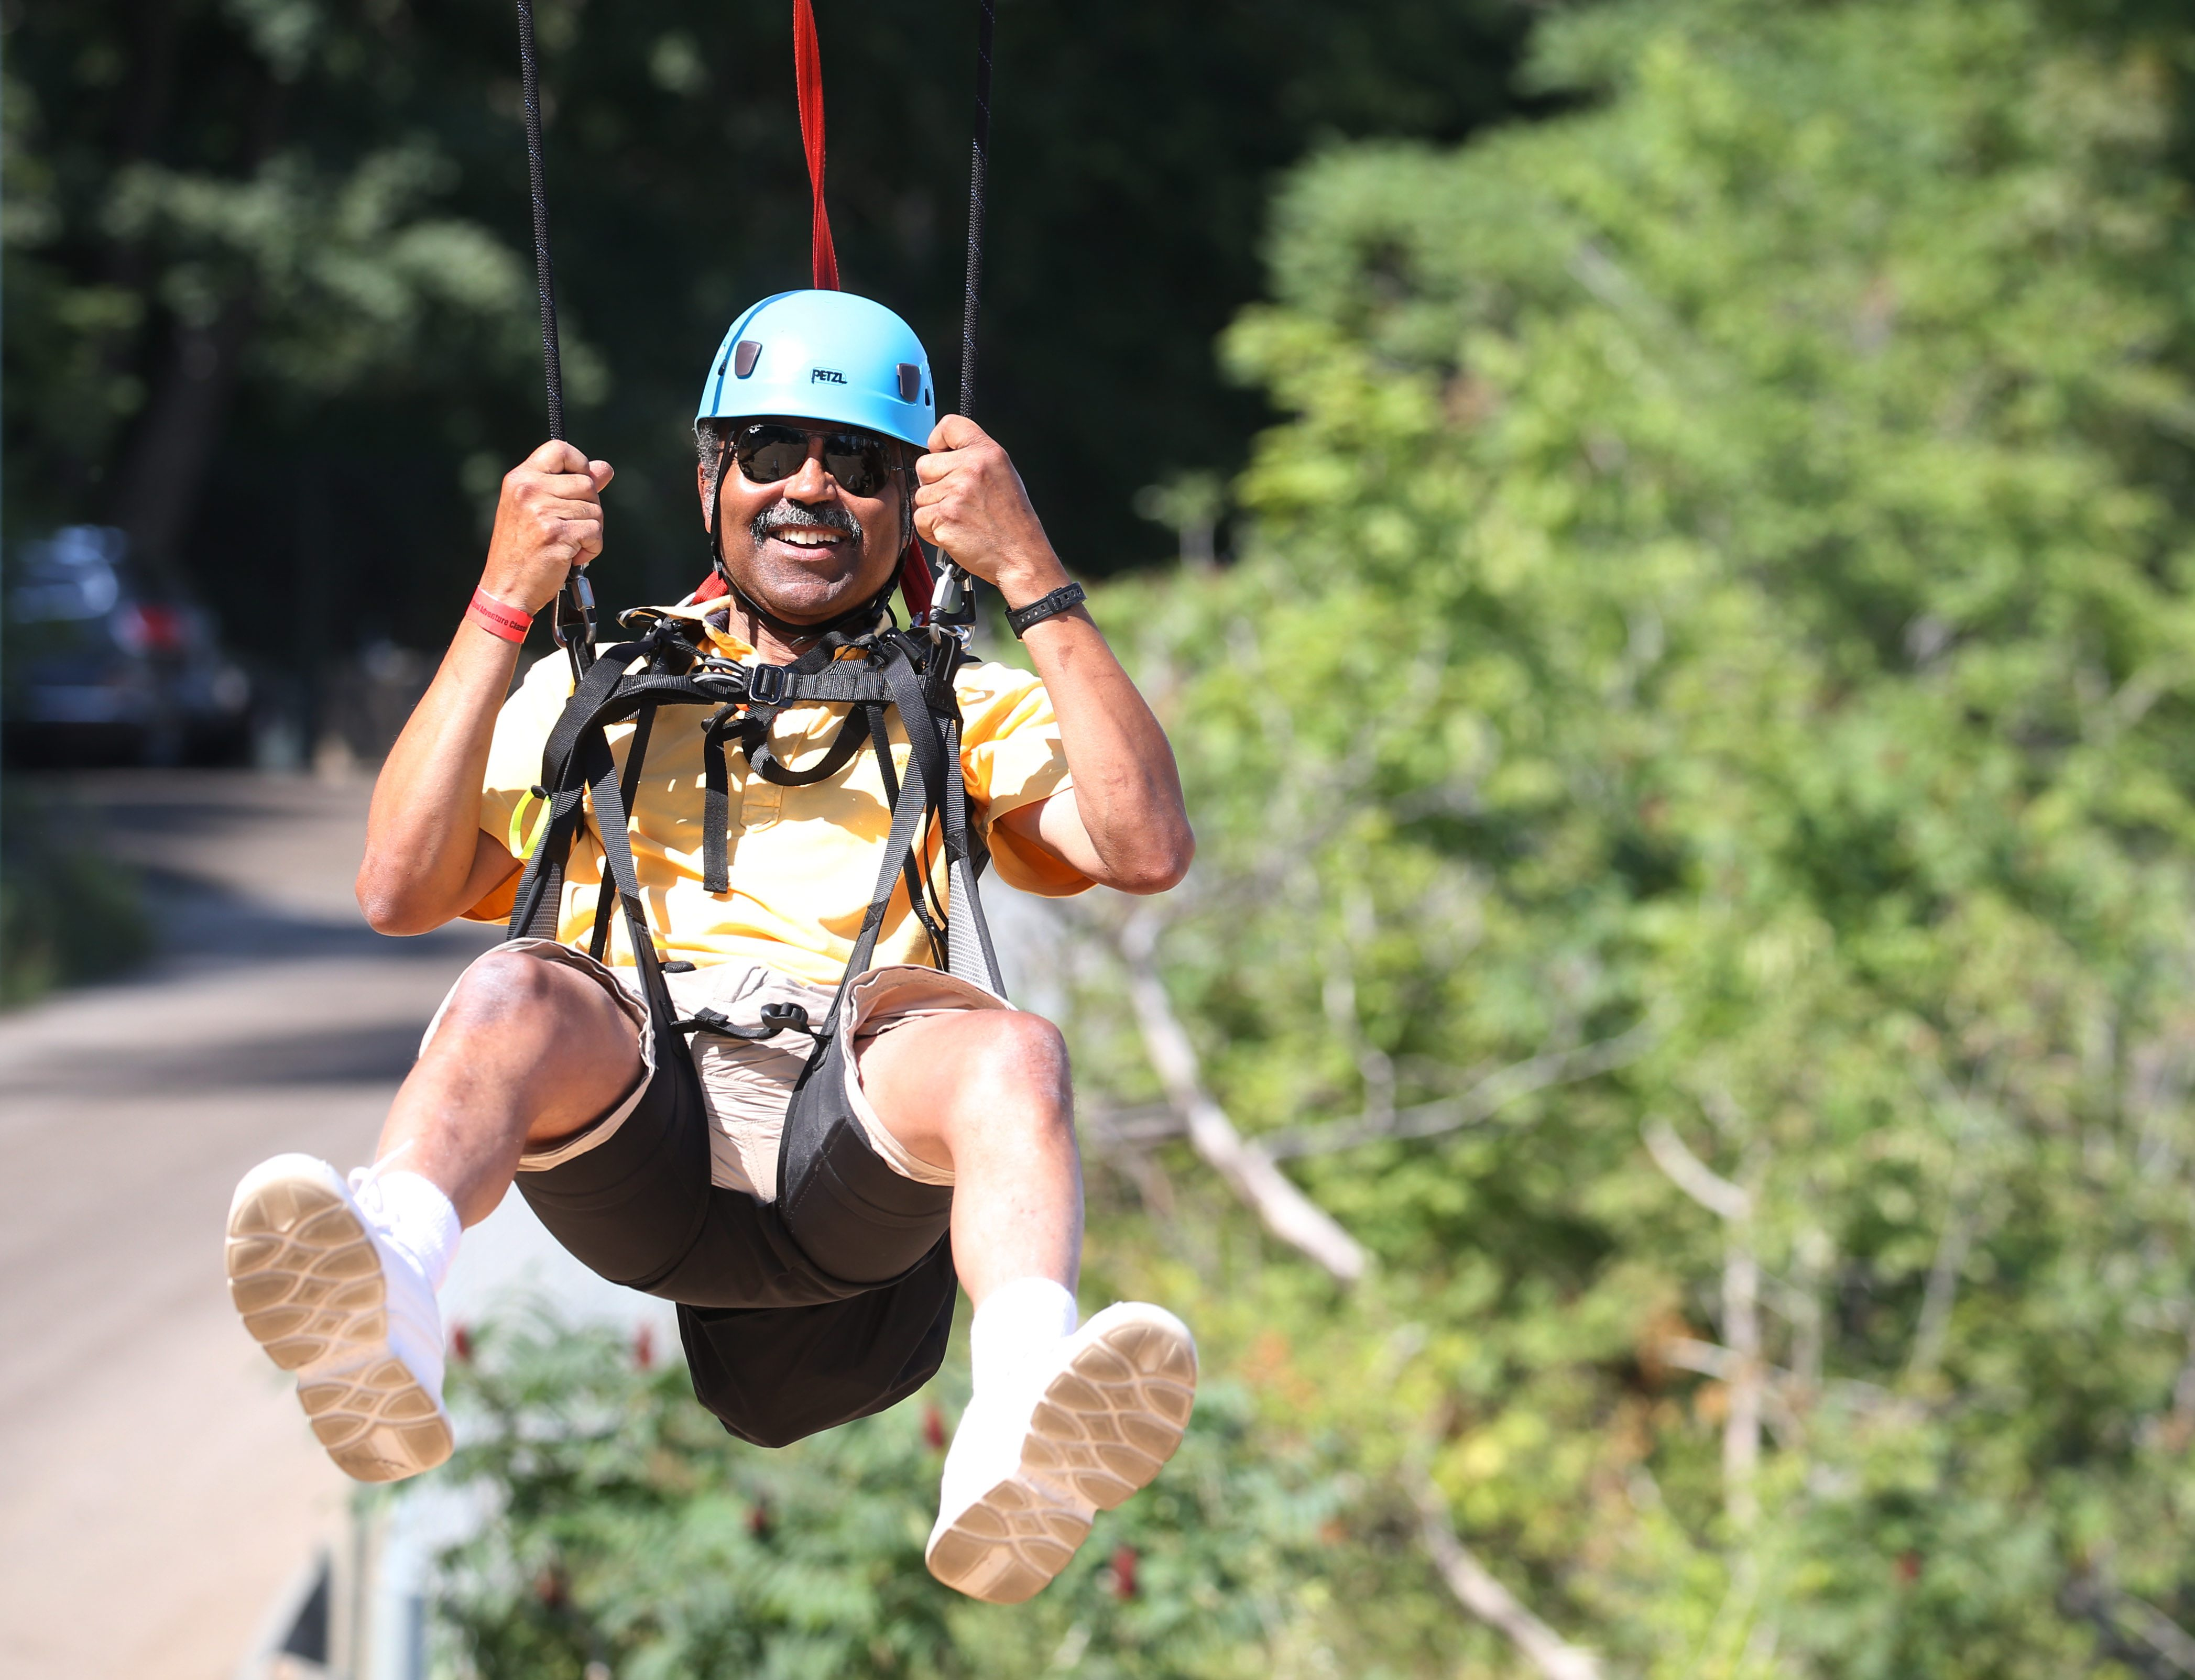 WildPlay's MistRider Zipline in Niagara Falls, Ont., descends 2,200 feet into the gorge. Buffalo News Urban Affairs Editor Rod Watson gets his turn on the zip line and comes in for the landing. (Sharon Cantillon/Buffalo News)